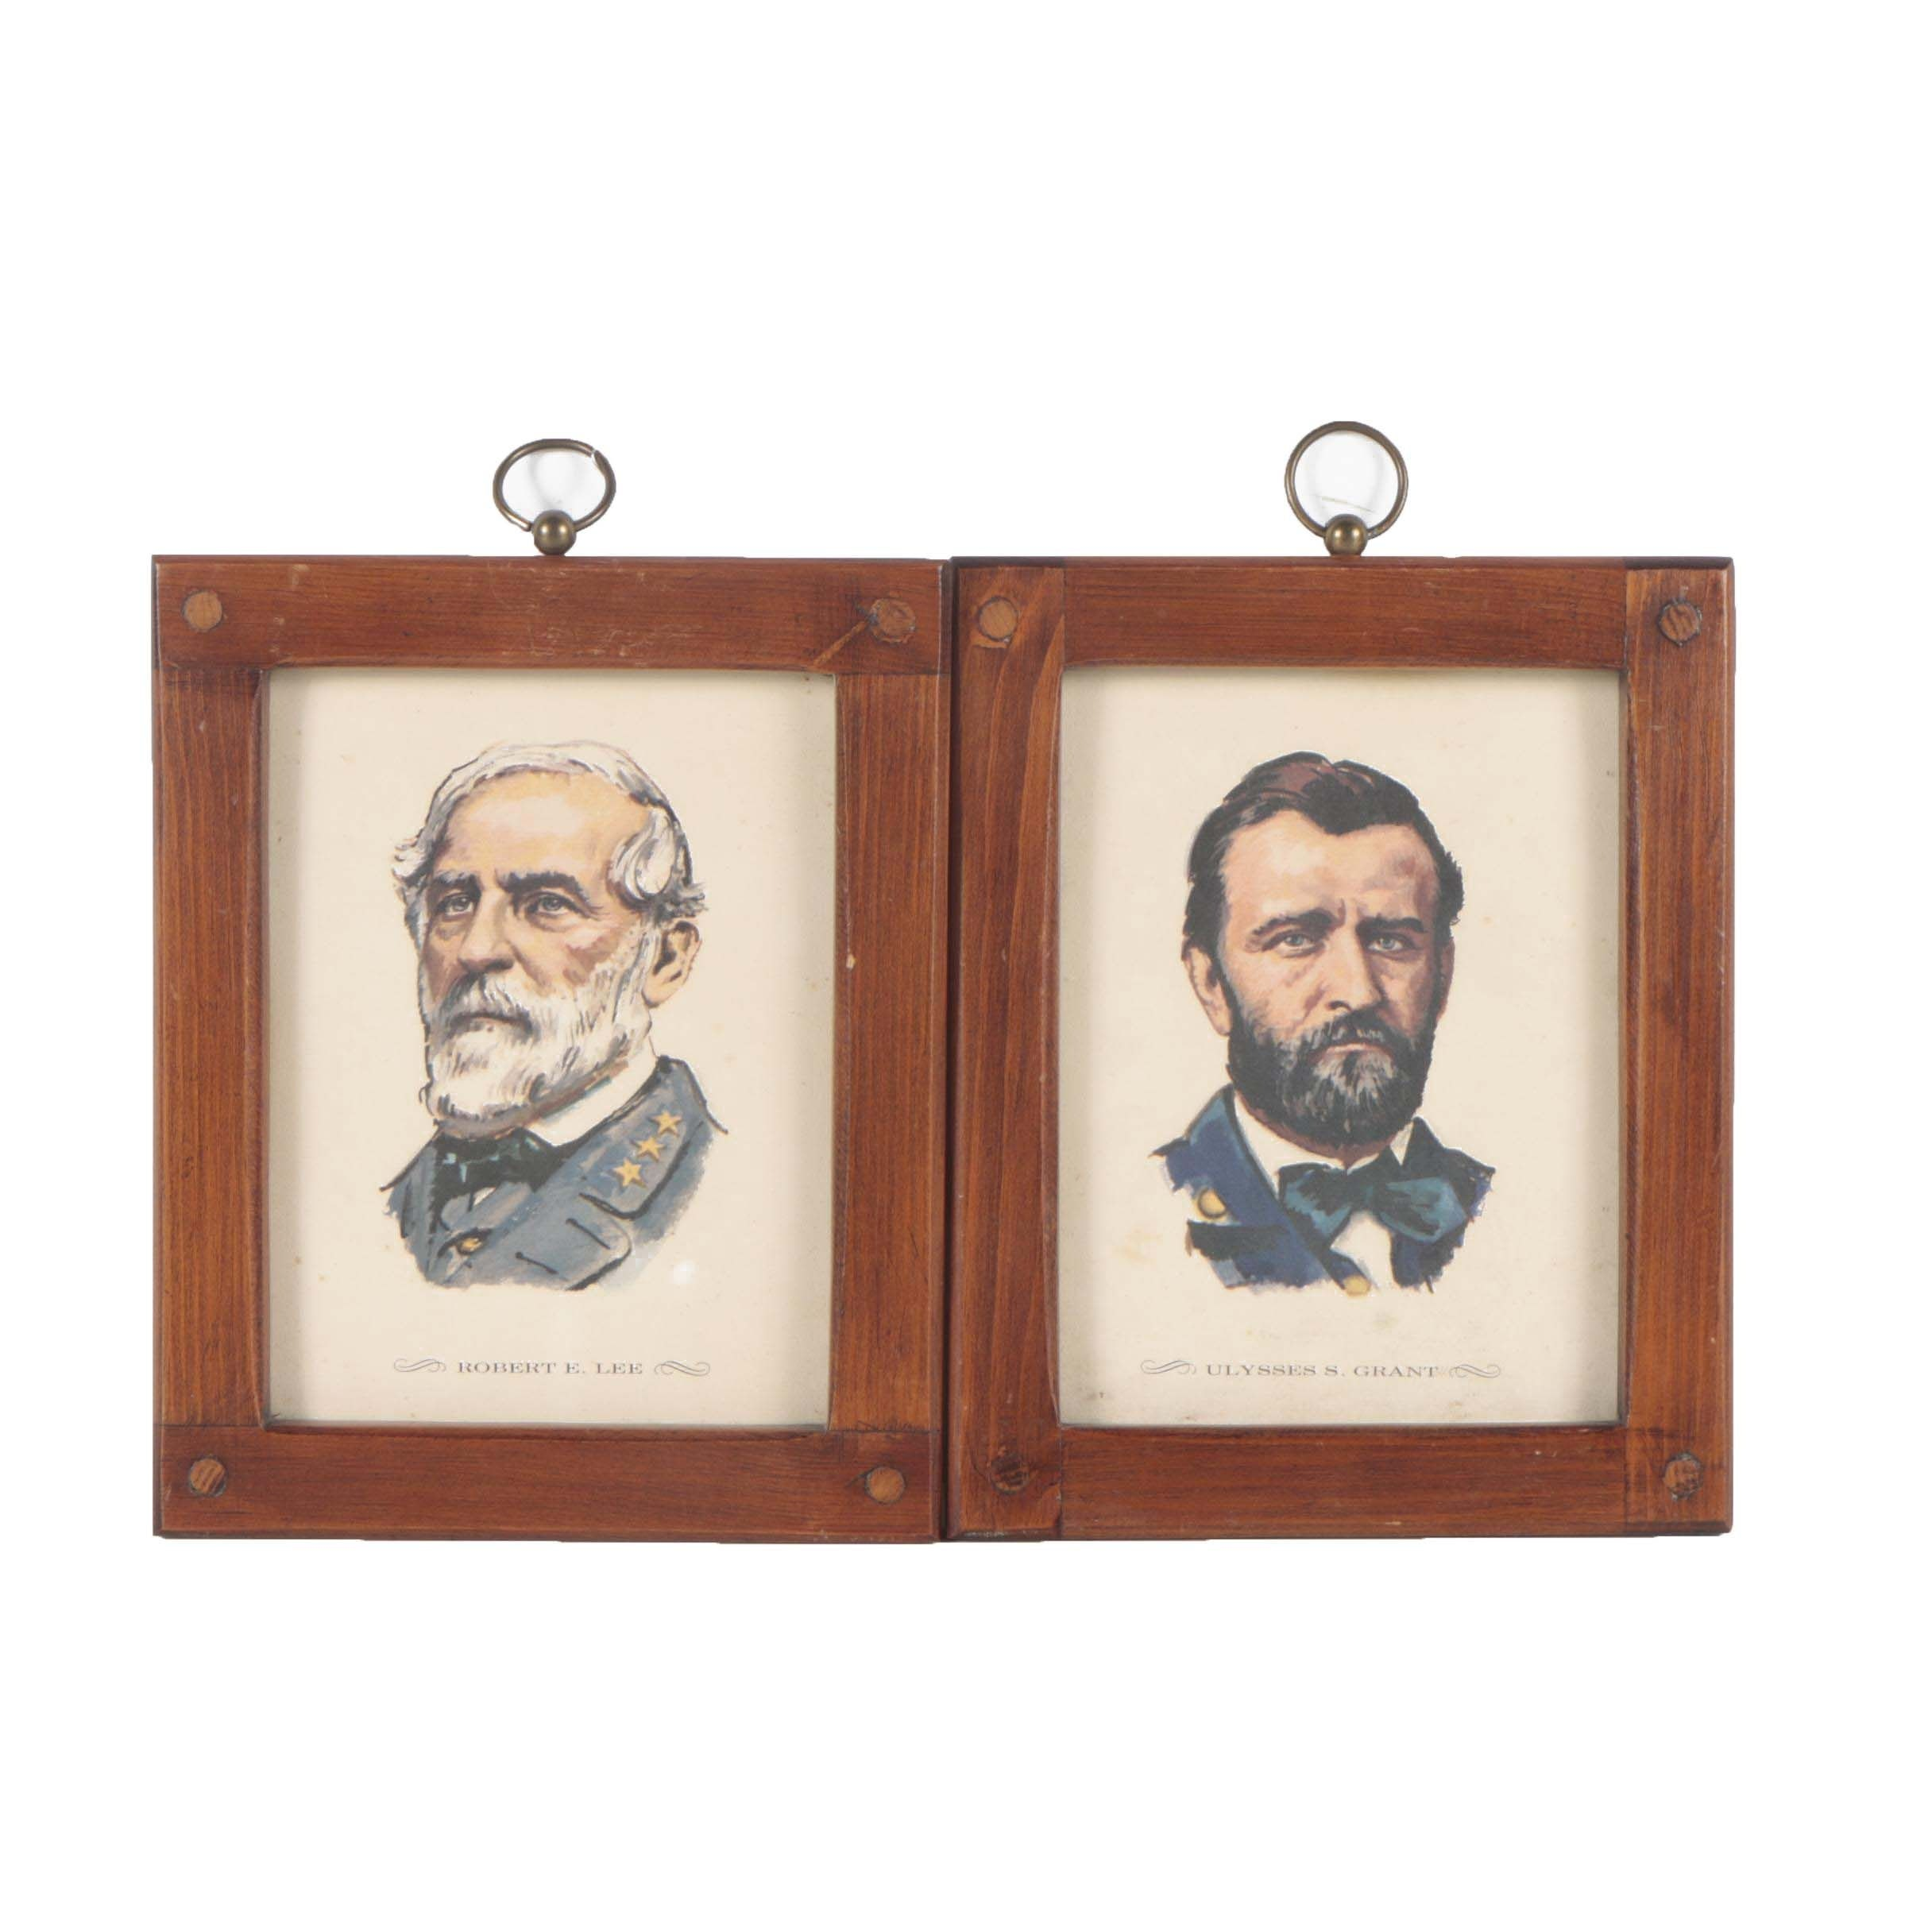 Offset Lithographs of Robert E. Lee and Ulysses S. Grant